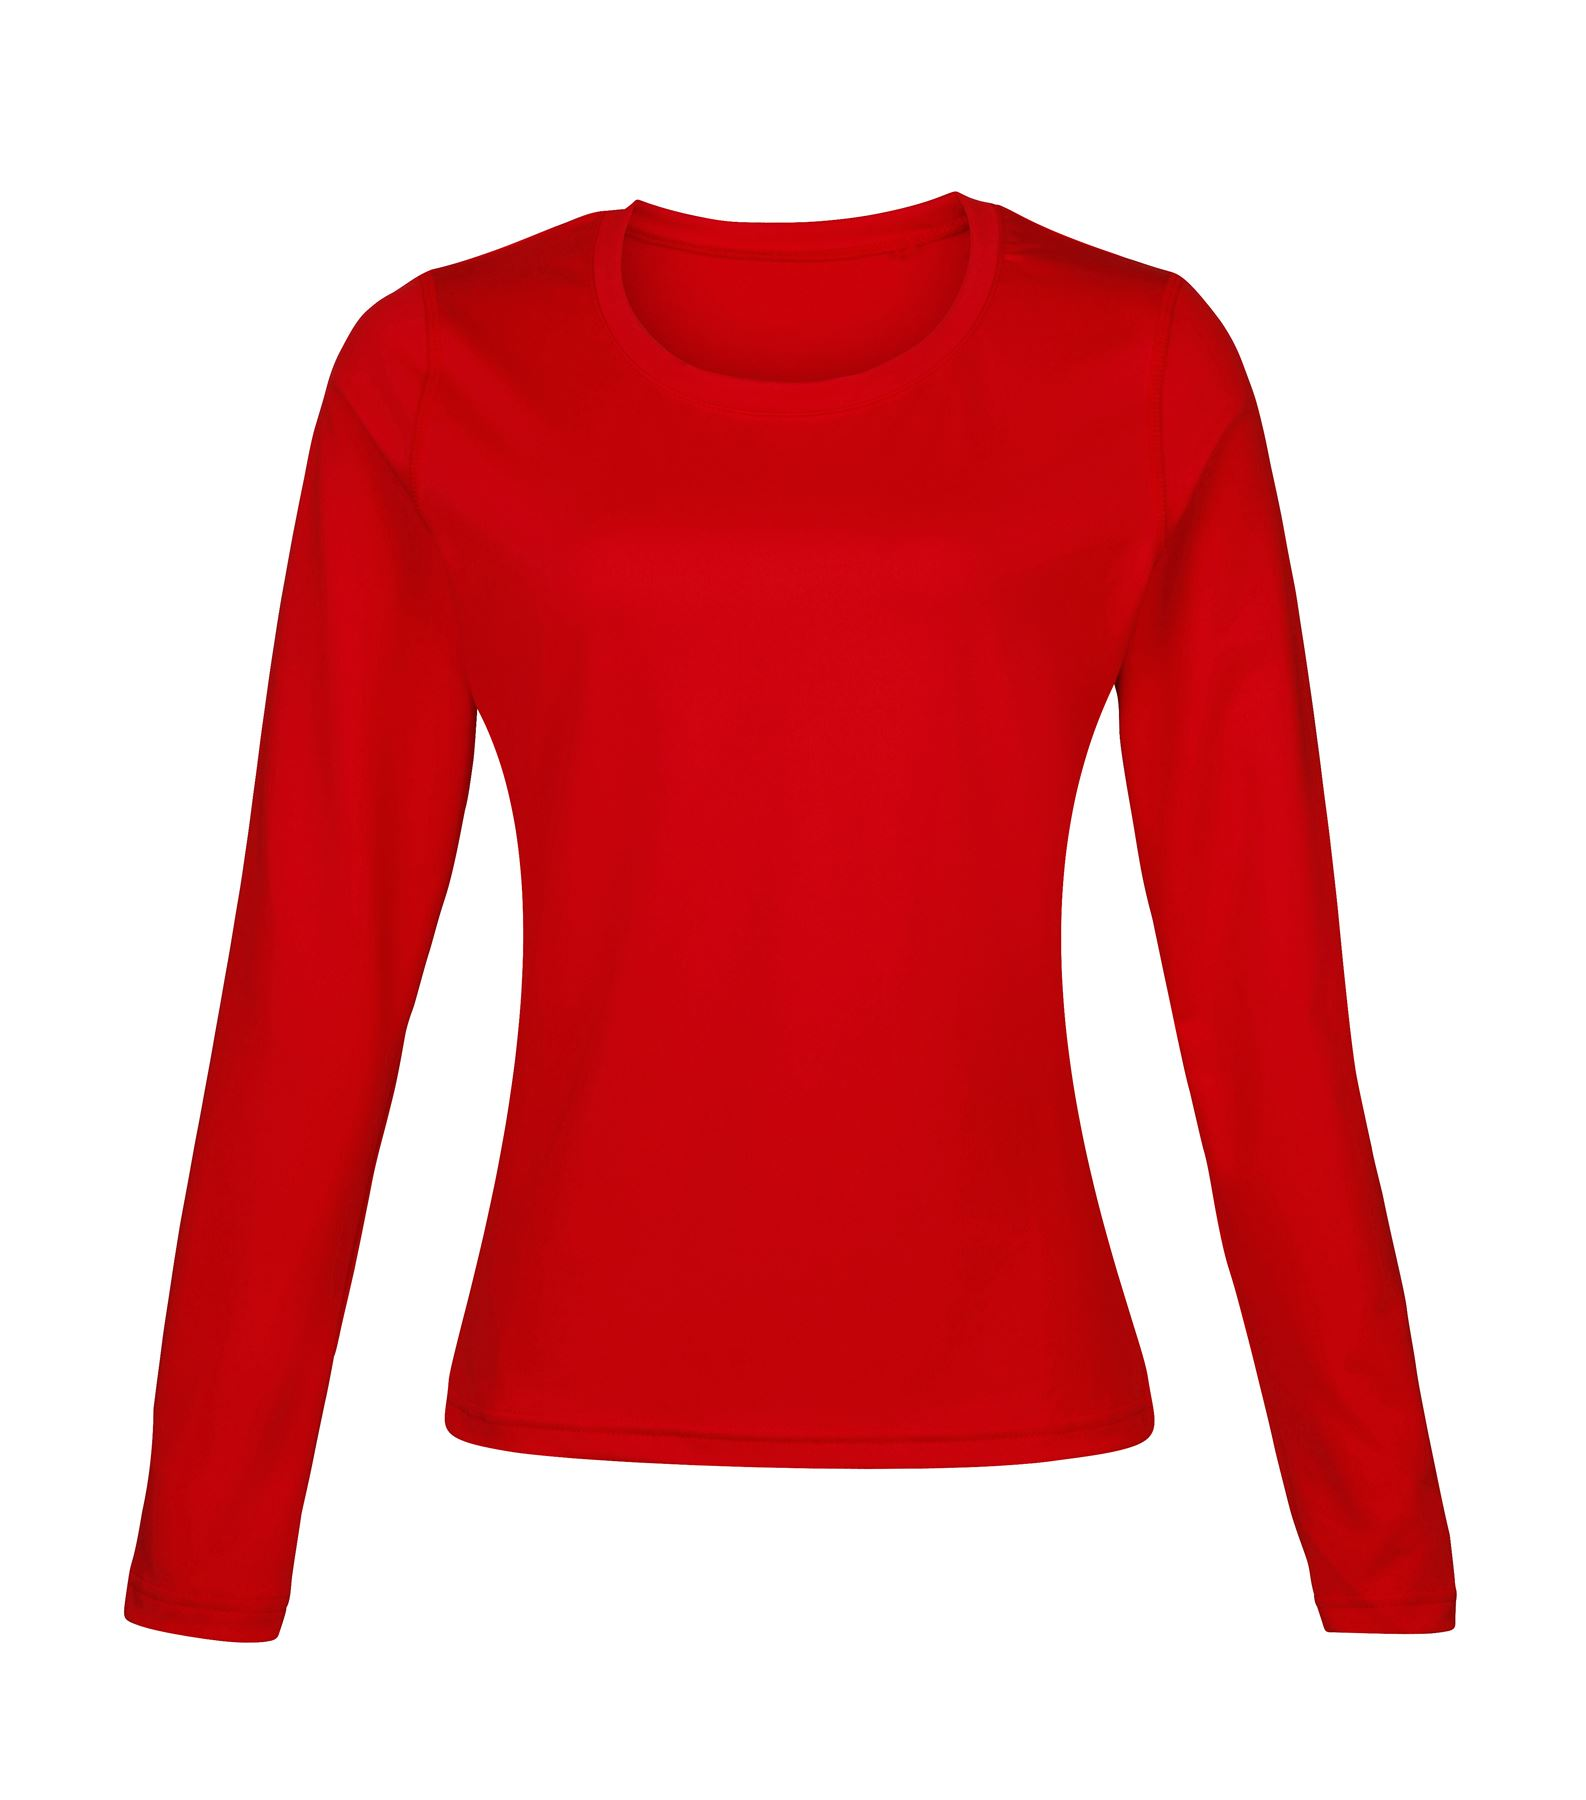 Rhino thermal wear womens rhino base layer long sleeve t Thermal t shirt long sleeve